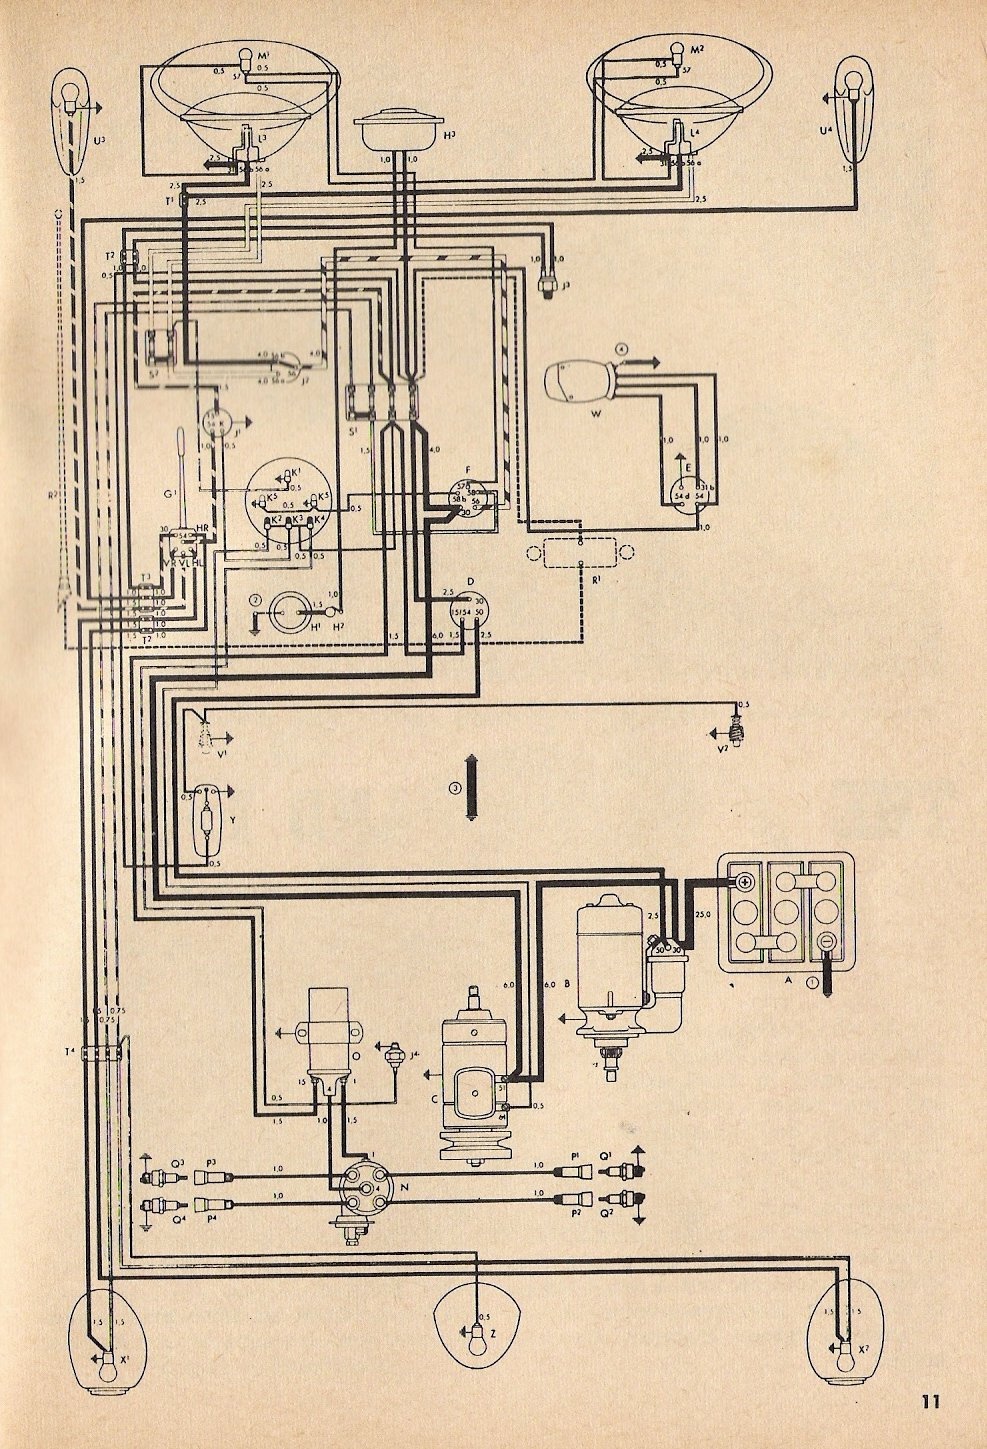 bug_toaug57 1957 beetle wiring diagram thegoldenbug com vw turn signal wiring diagram at creativeand.co